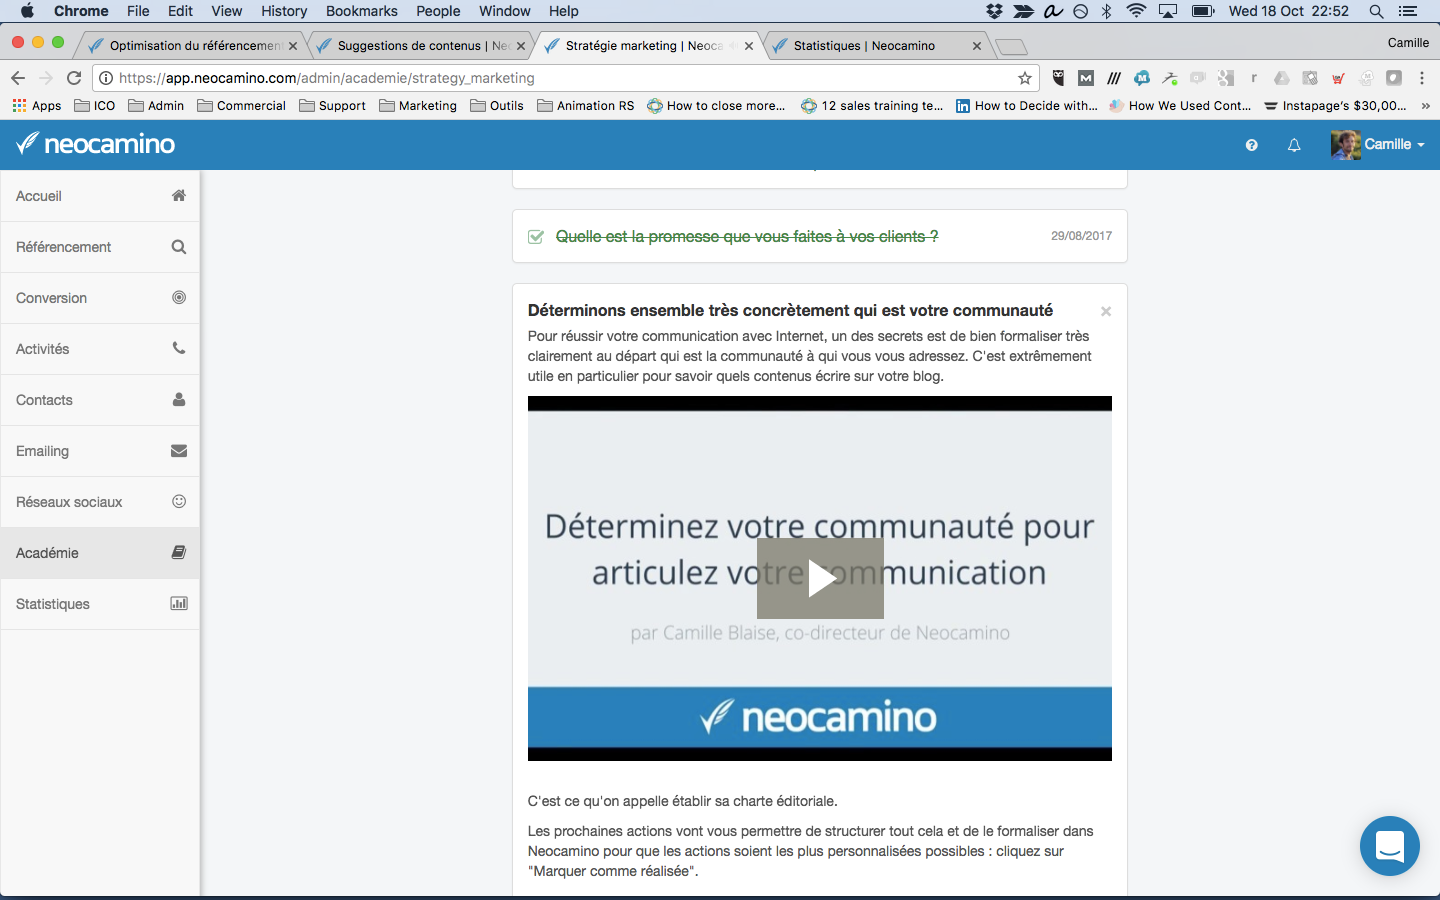 Neocamino Academy to learn to use all the necessary marketing tools